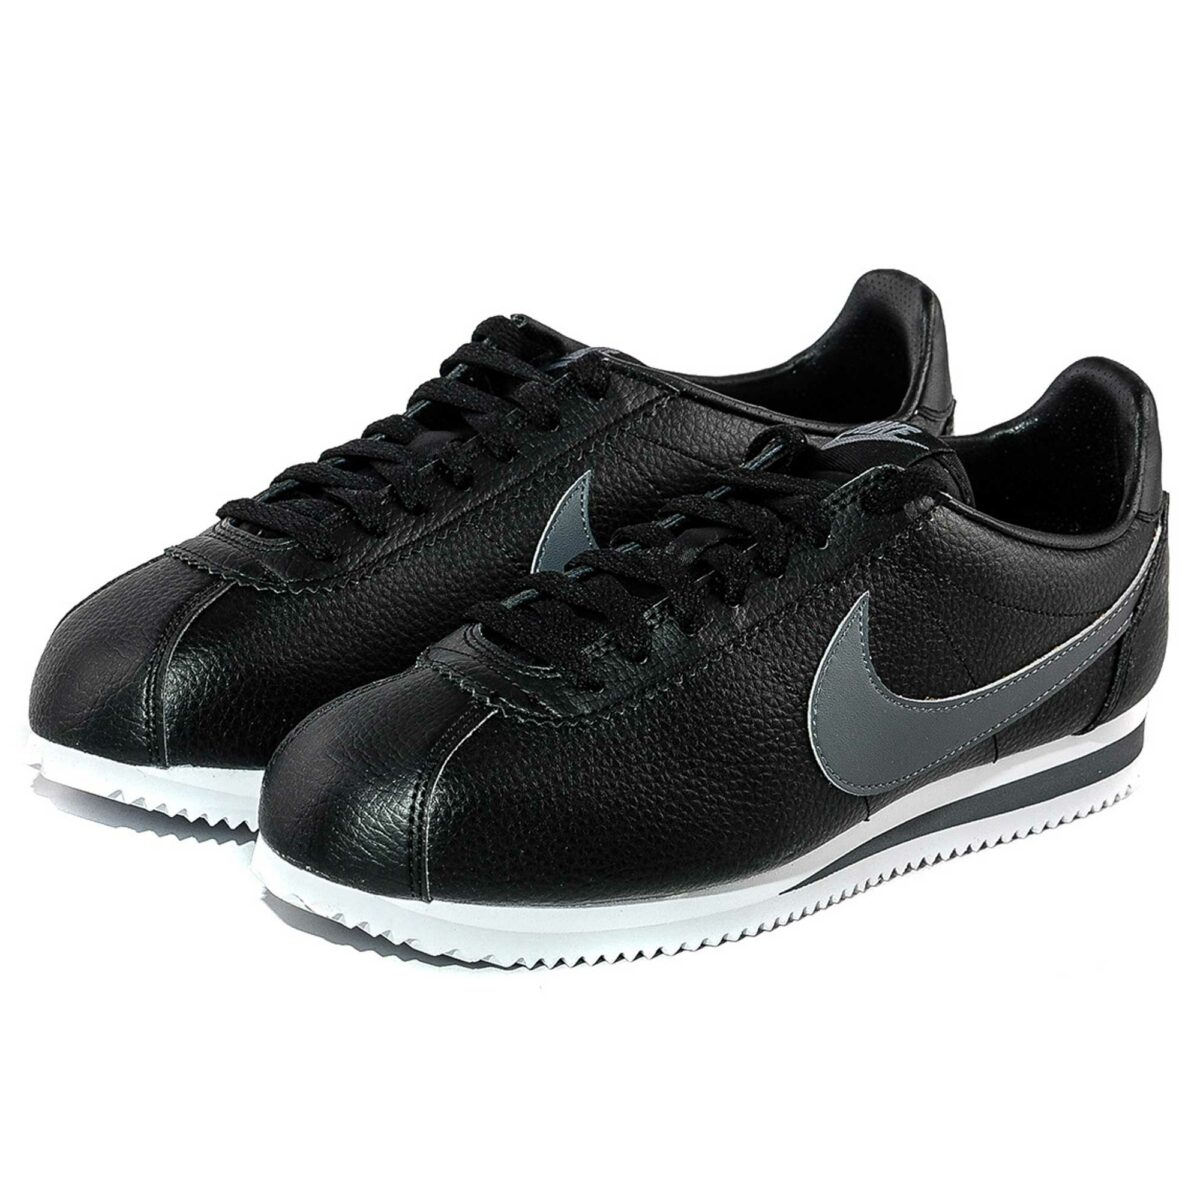 nike cortez leather triple black grey 749571_011 купить